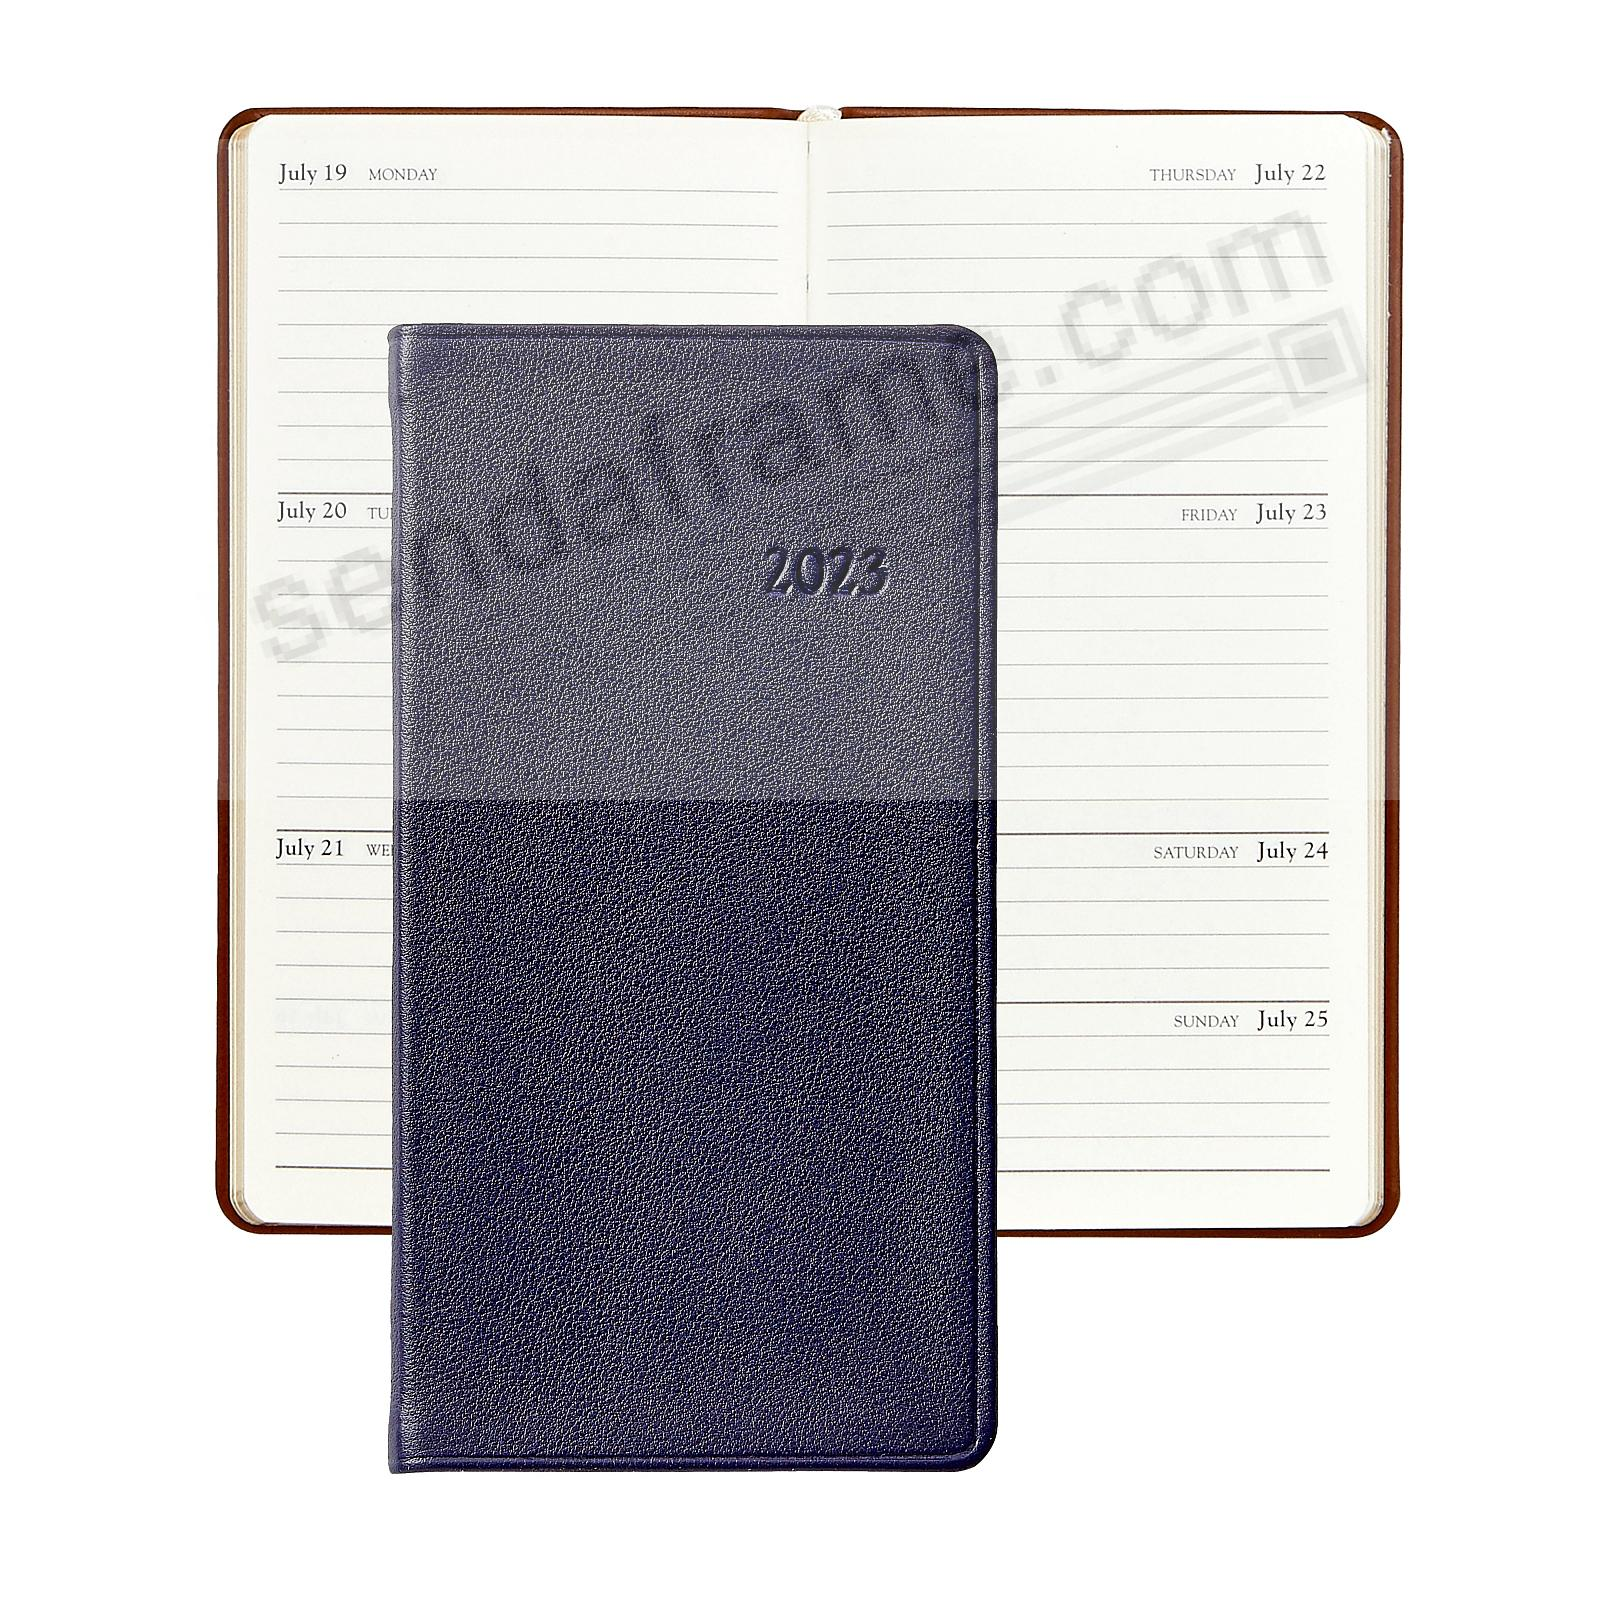 2018 TRADITIONAL-BLUE 6-inch Pocket Datebook Diary in Fine Calfskin Leather by Graphic Image™